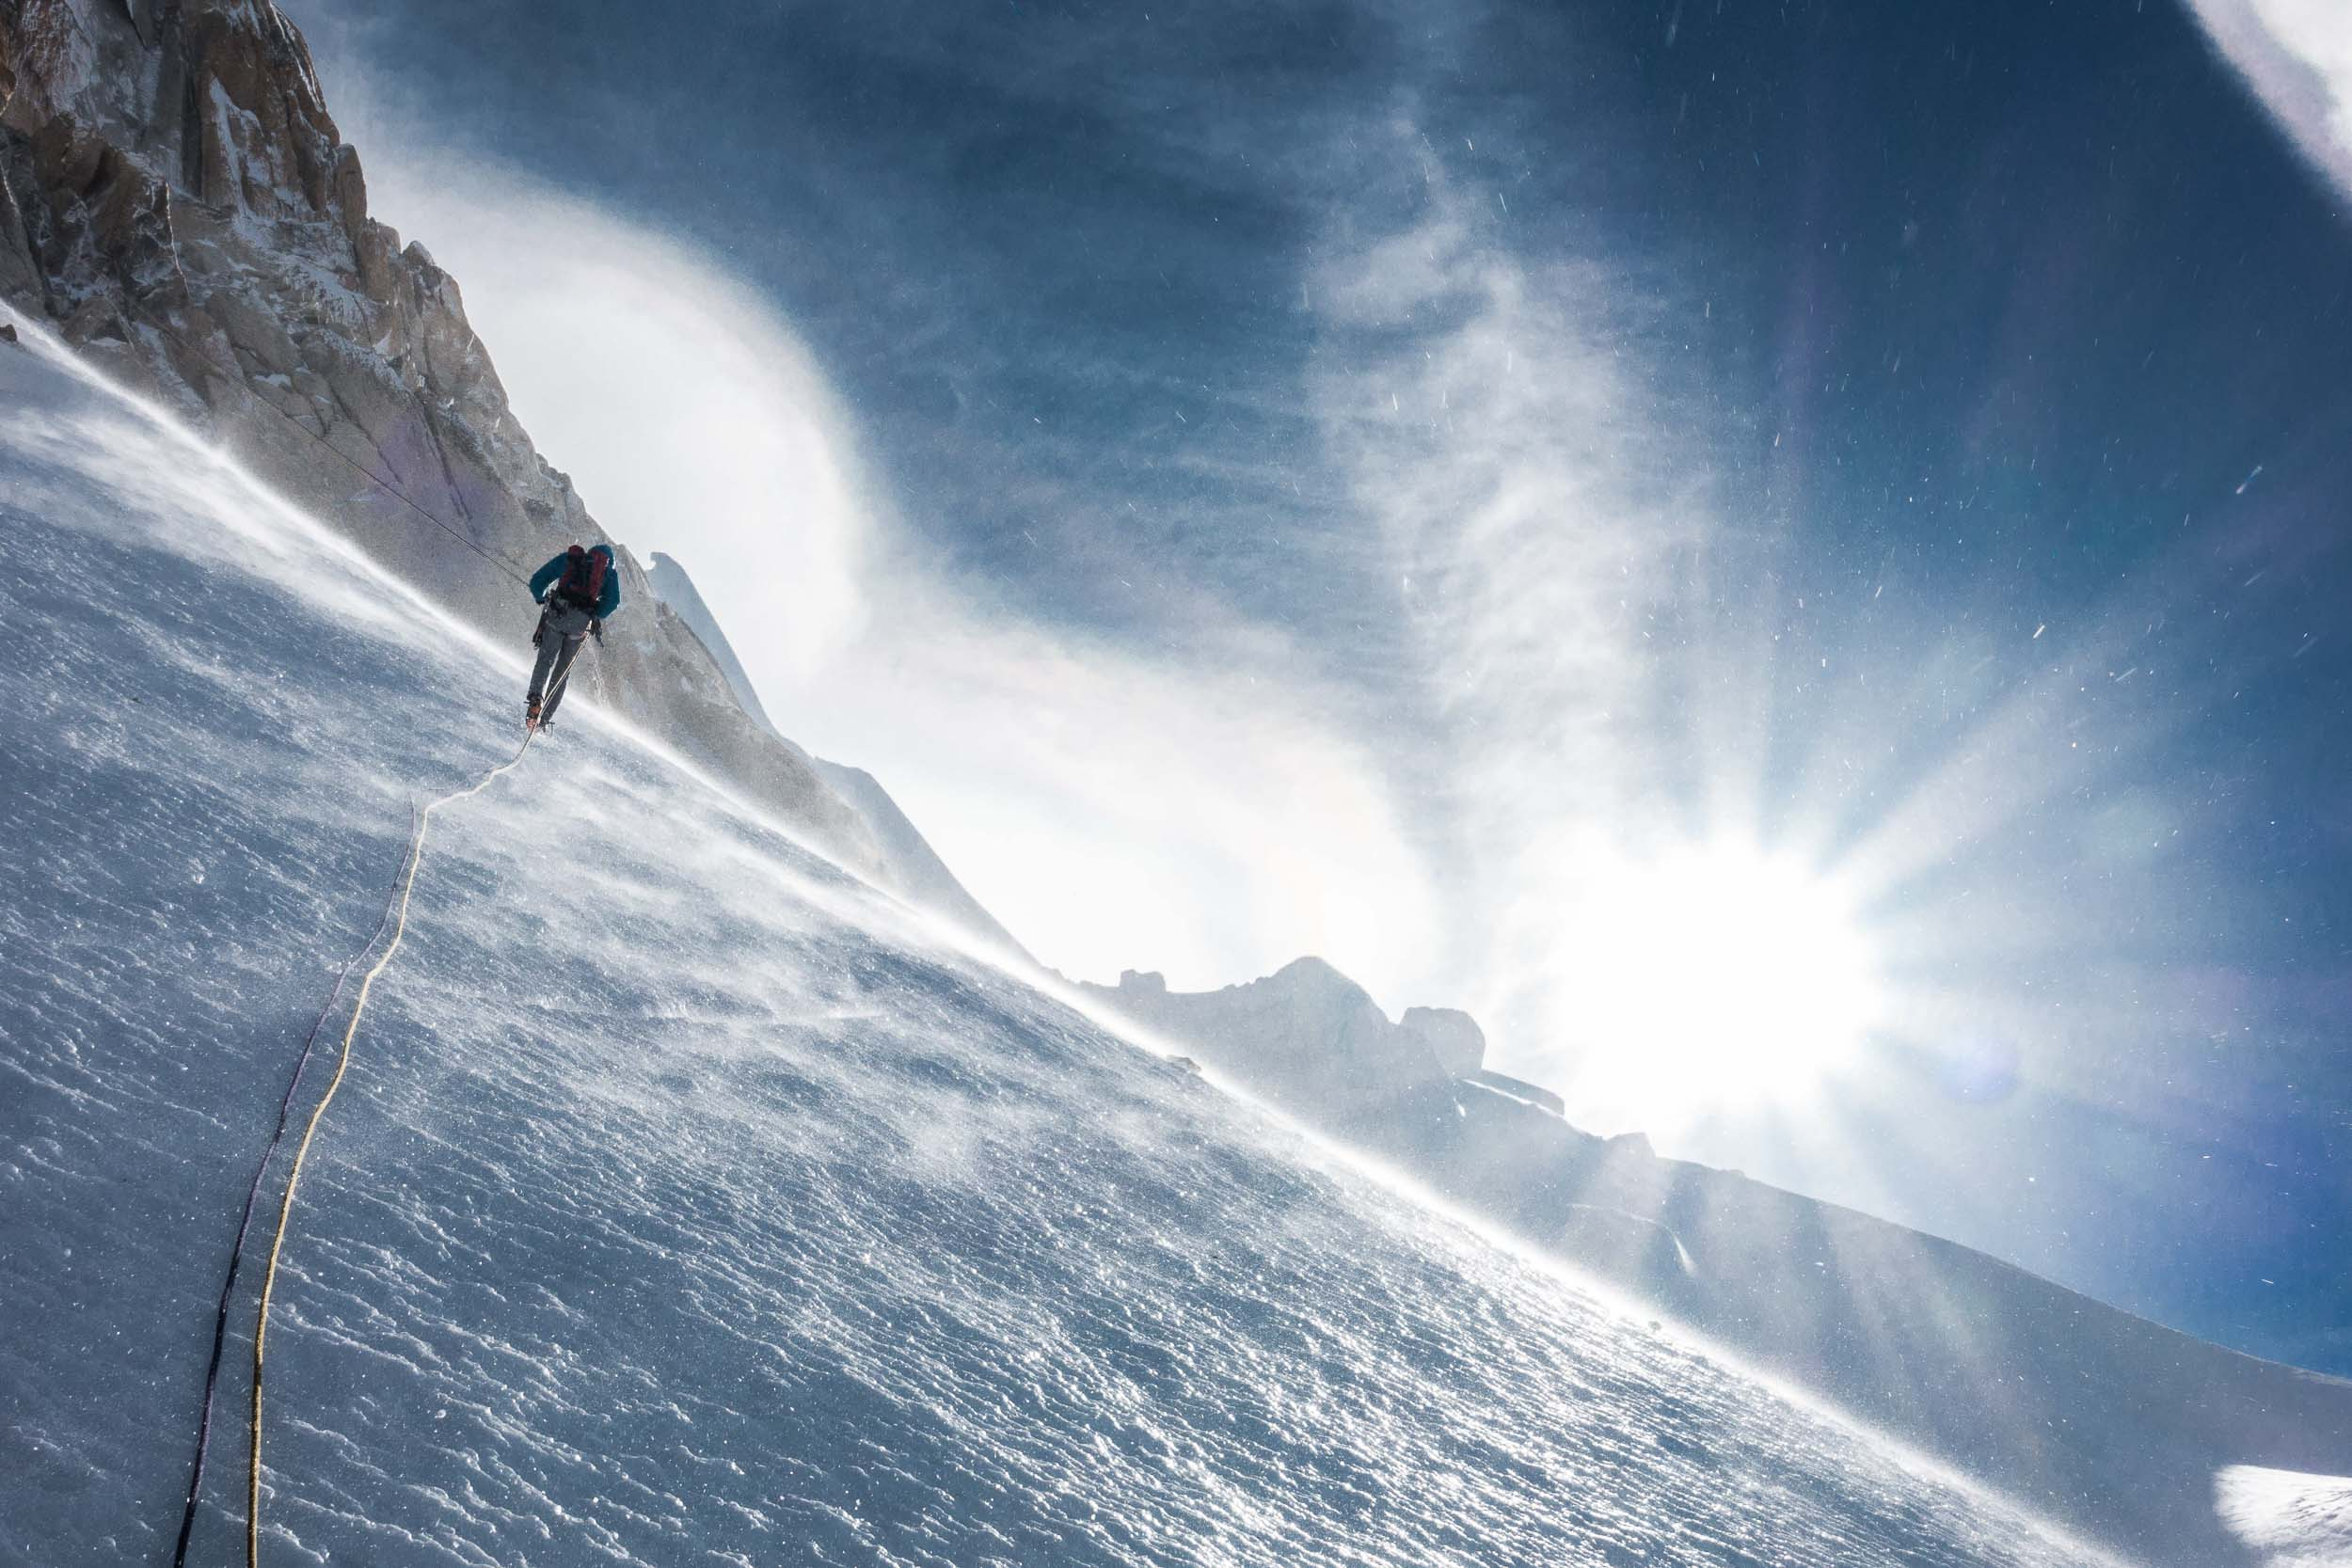 No Plans, No Partners: Chamonix With Mark Smiley and Friends